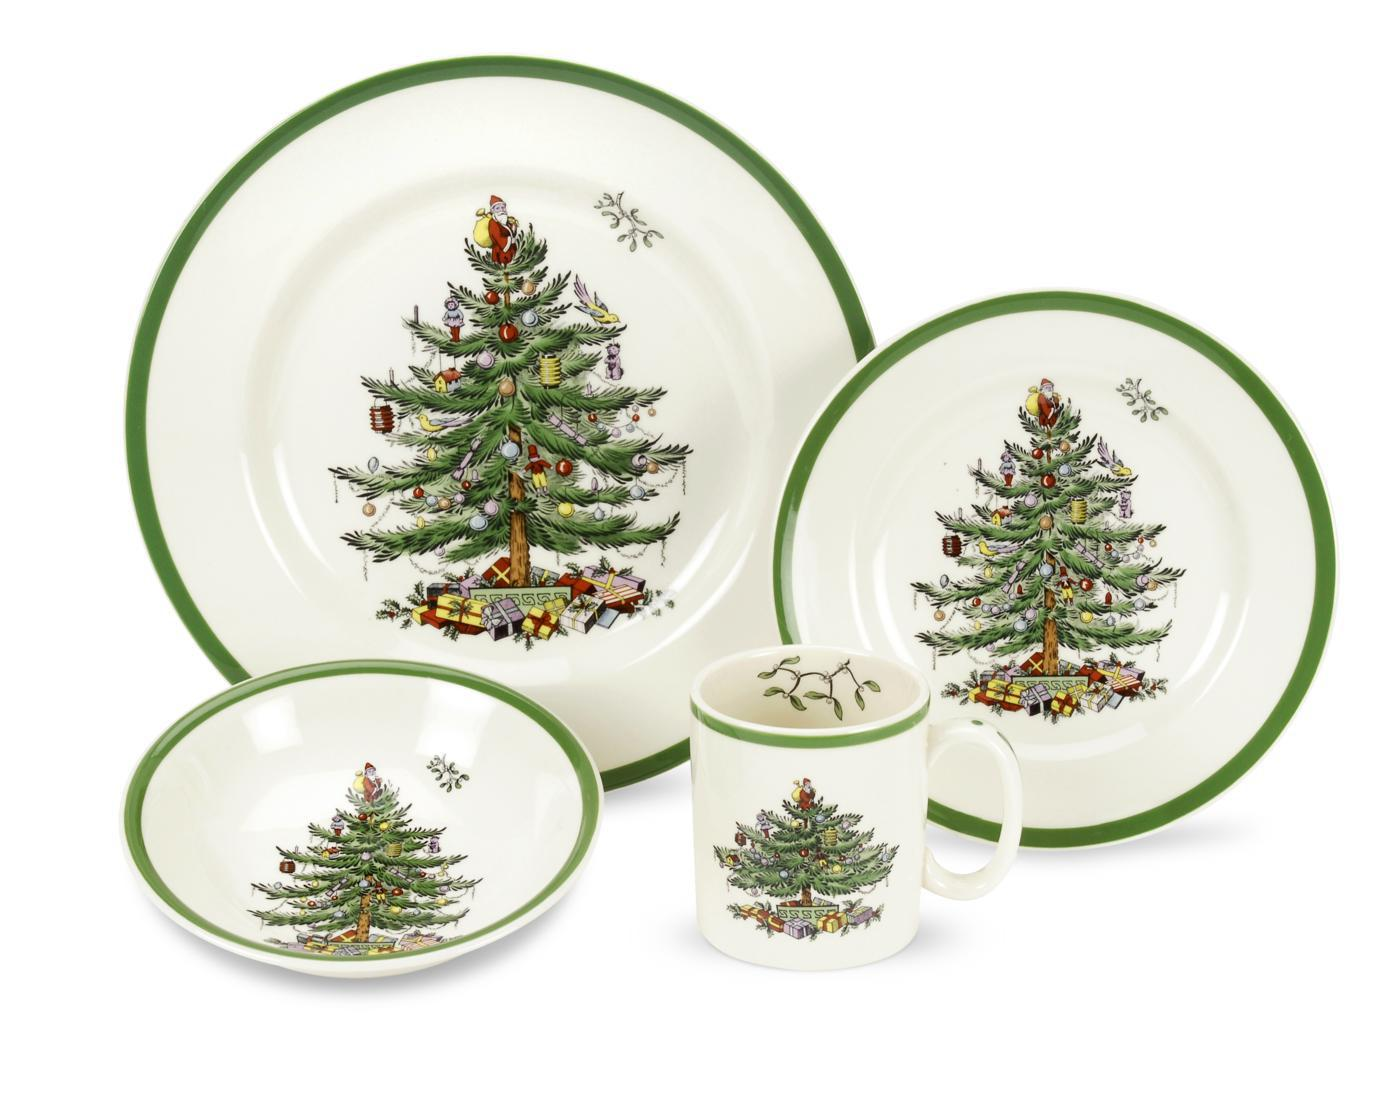 Spode Christmas Tree 4-Piece Placesetting image number 0